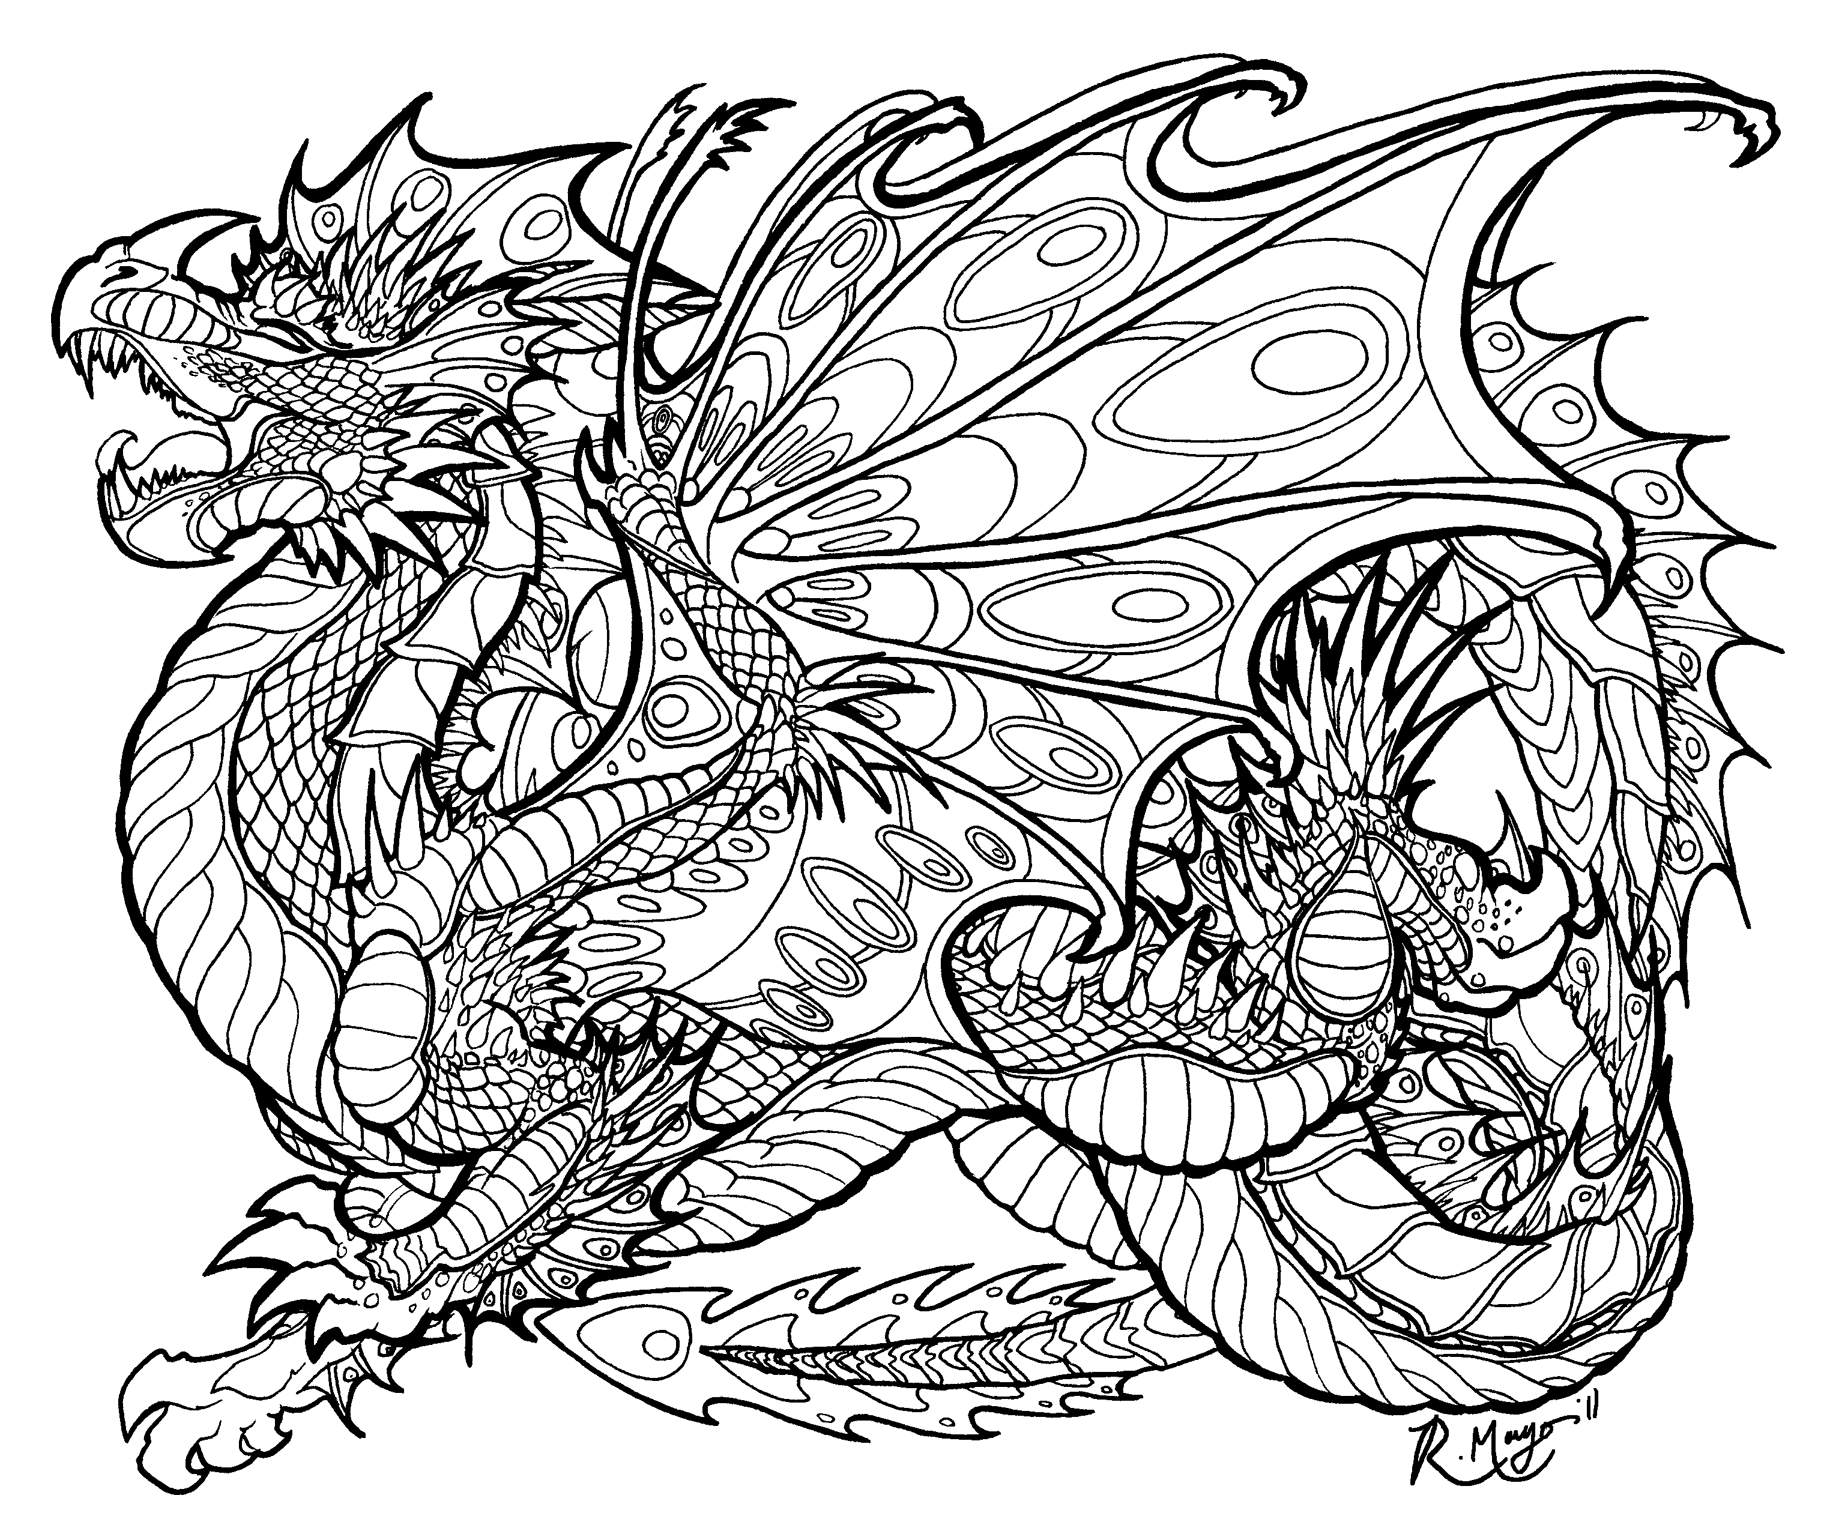 realistic dragon coloring pages coloring pages for adults difficult dragons at getdrawings dragon realistic pages coloring